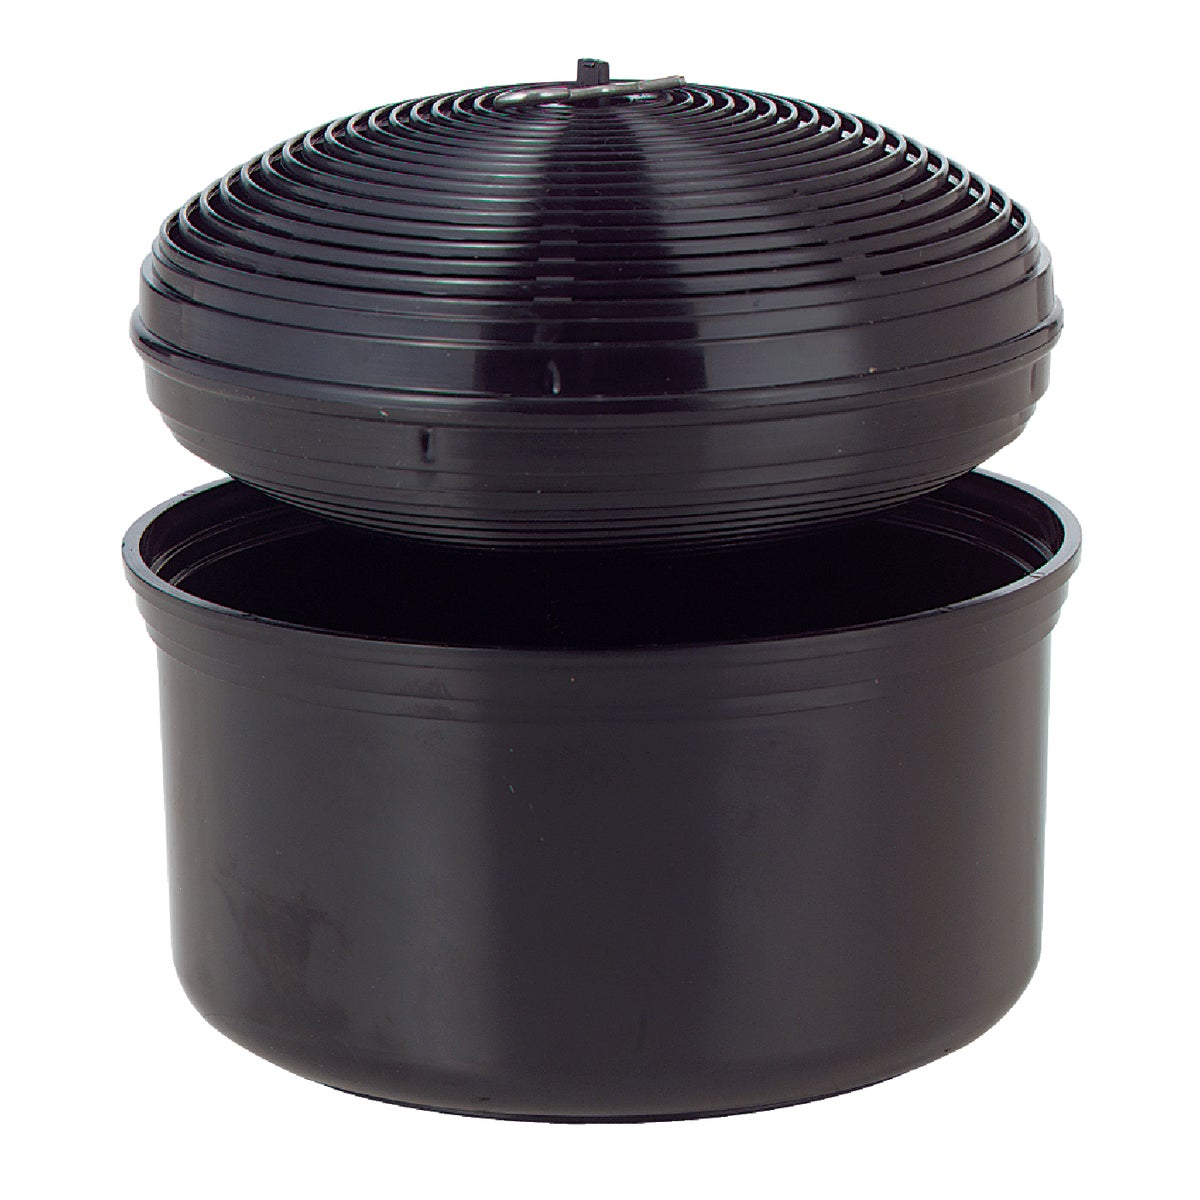 DRI-Z-AIR CONTAINER - 501 by Rainier Precision